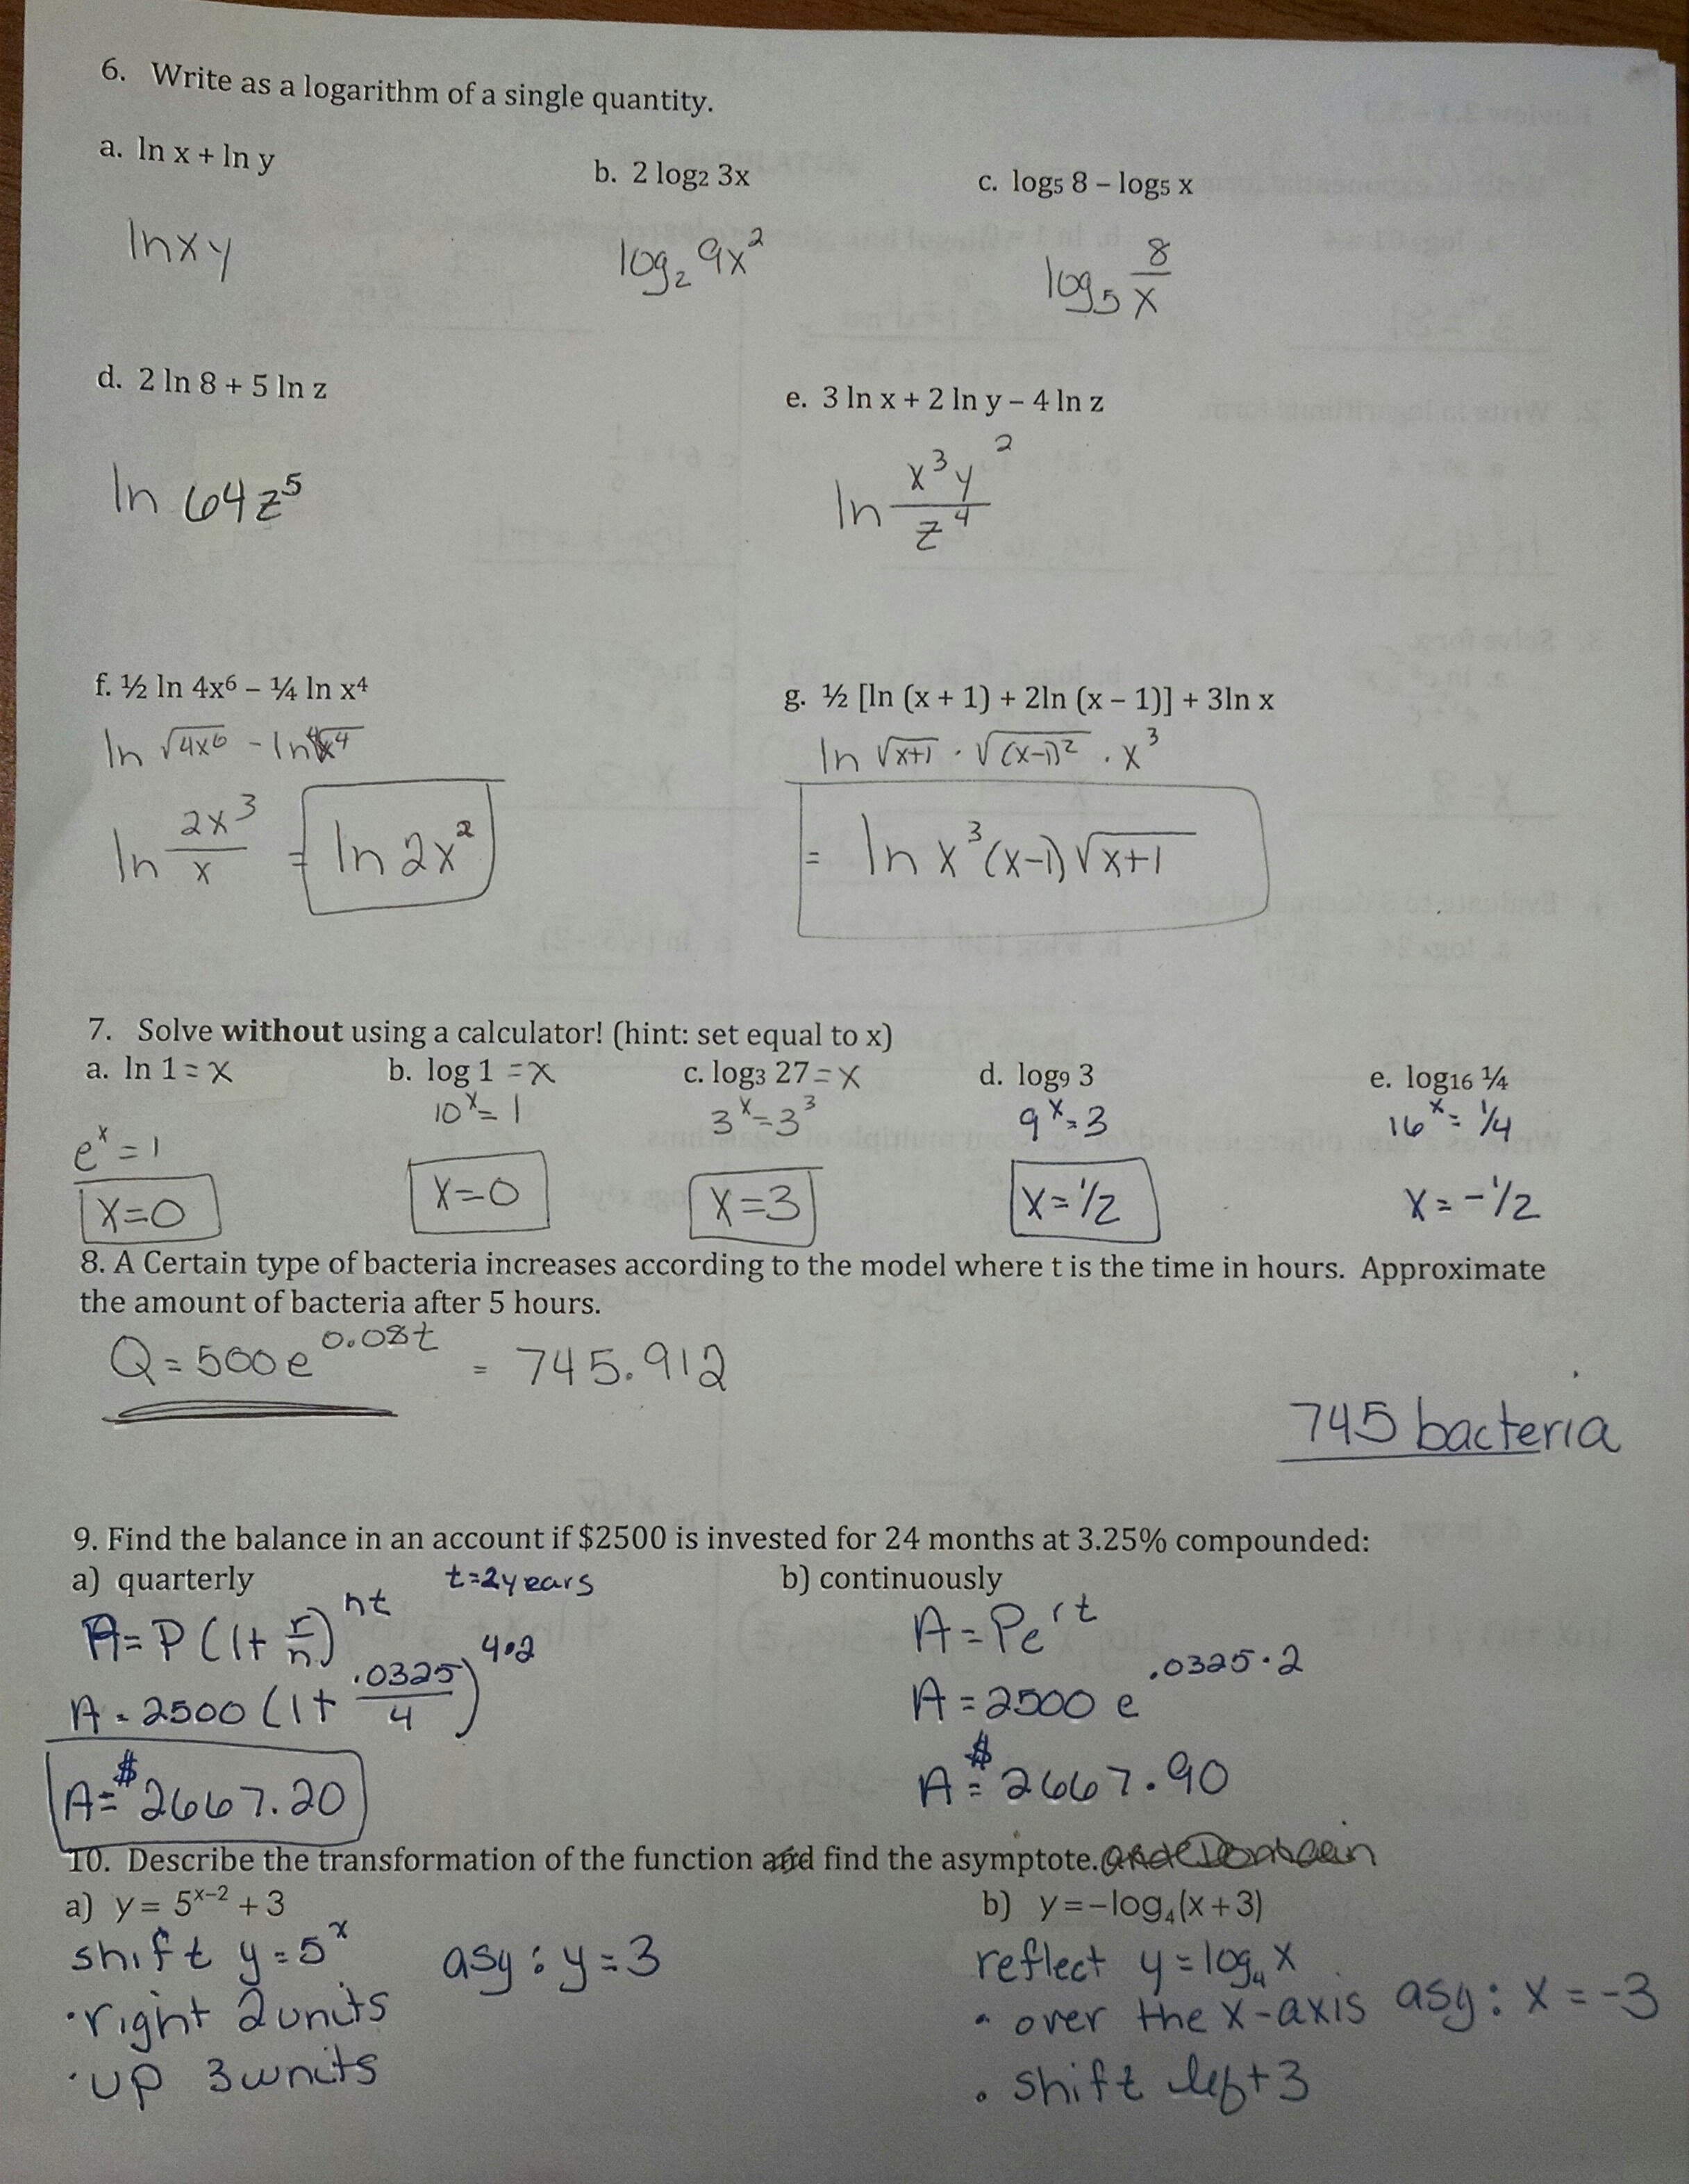 homework assignments algebra  attachments 3 1 3 3 rev solutions pg 1 jpg